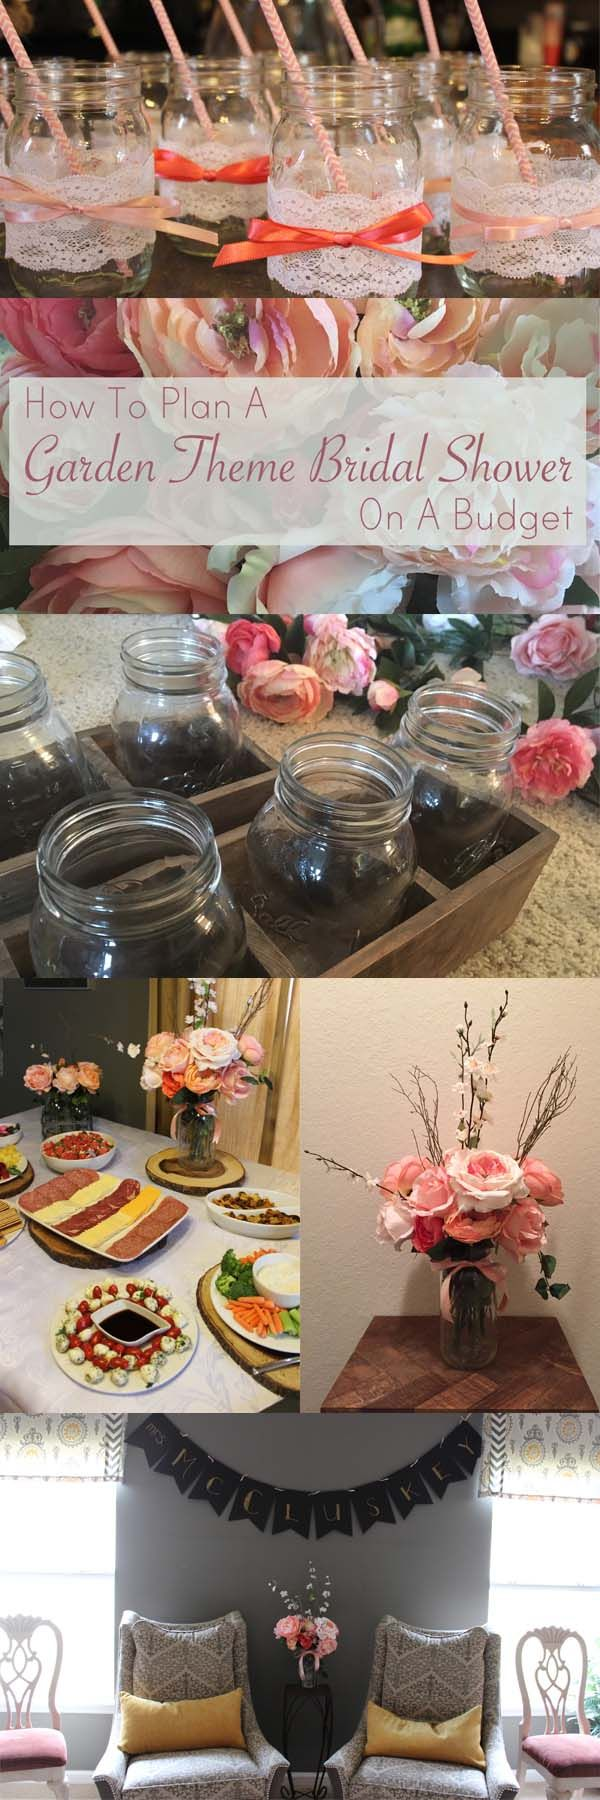 great ideas for planing a garden theme bridal shower on a budget